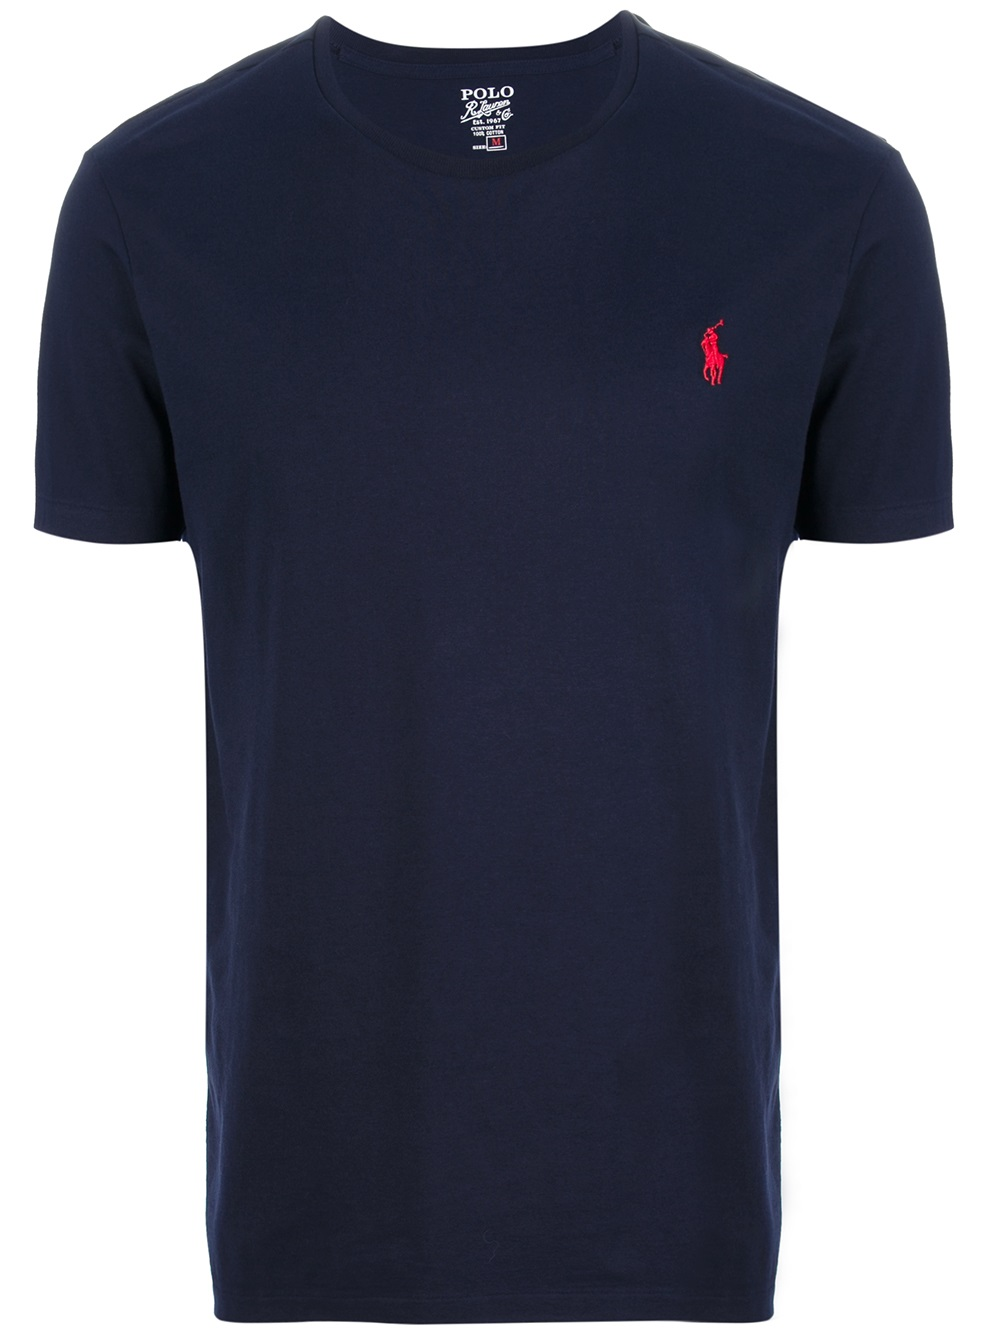 polo ralph lauren custom fit t shirt in blue for men navy lyst. Black Bedroom Furniture Sets. Home Design Ideas